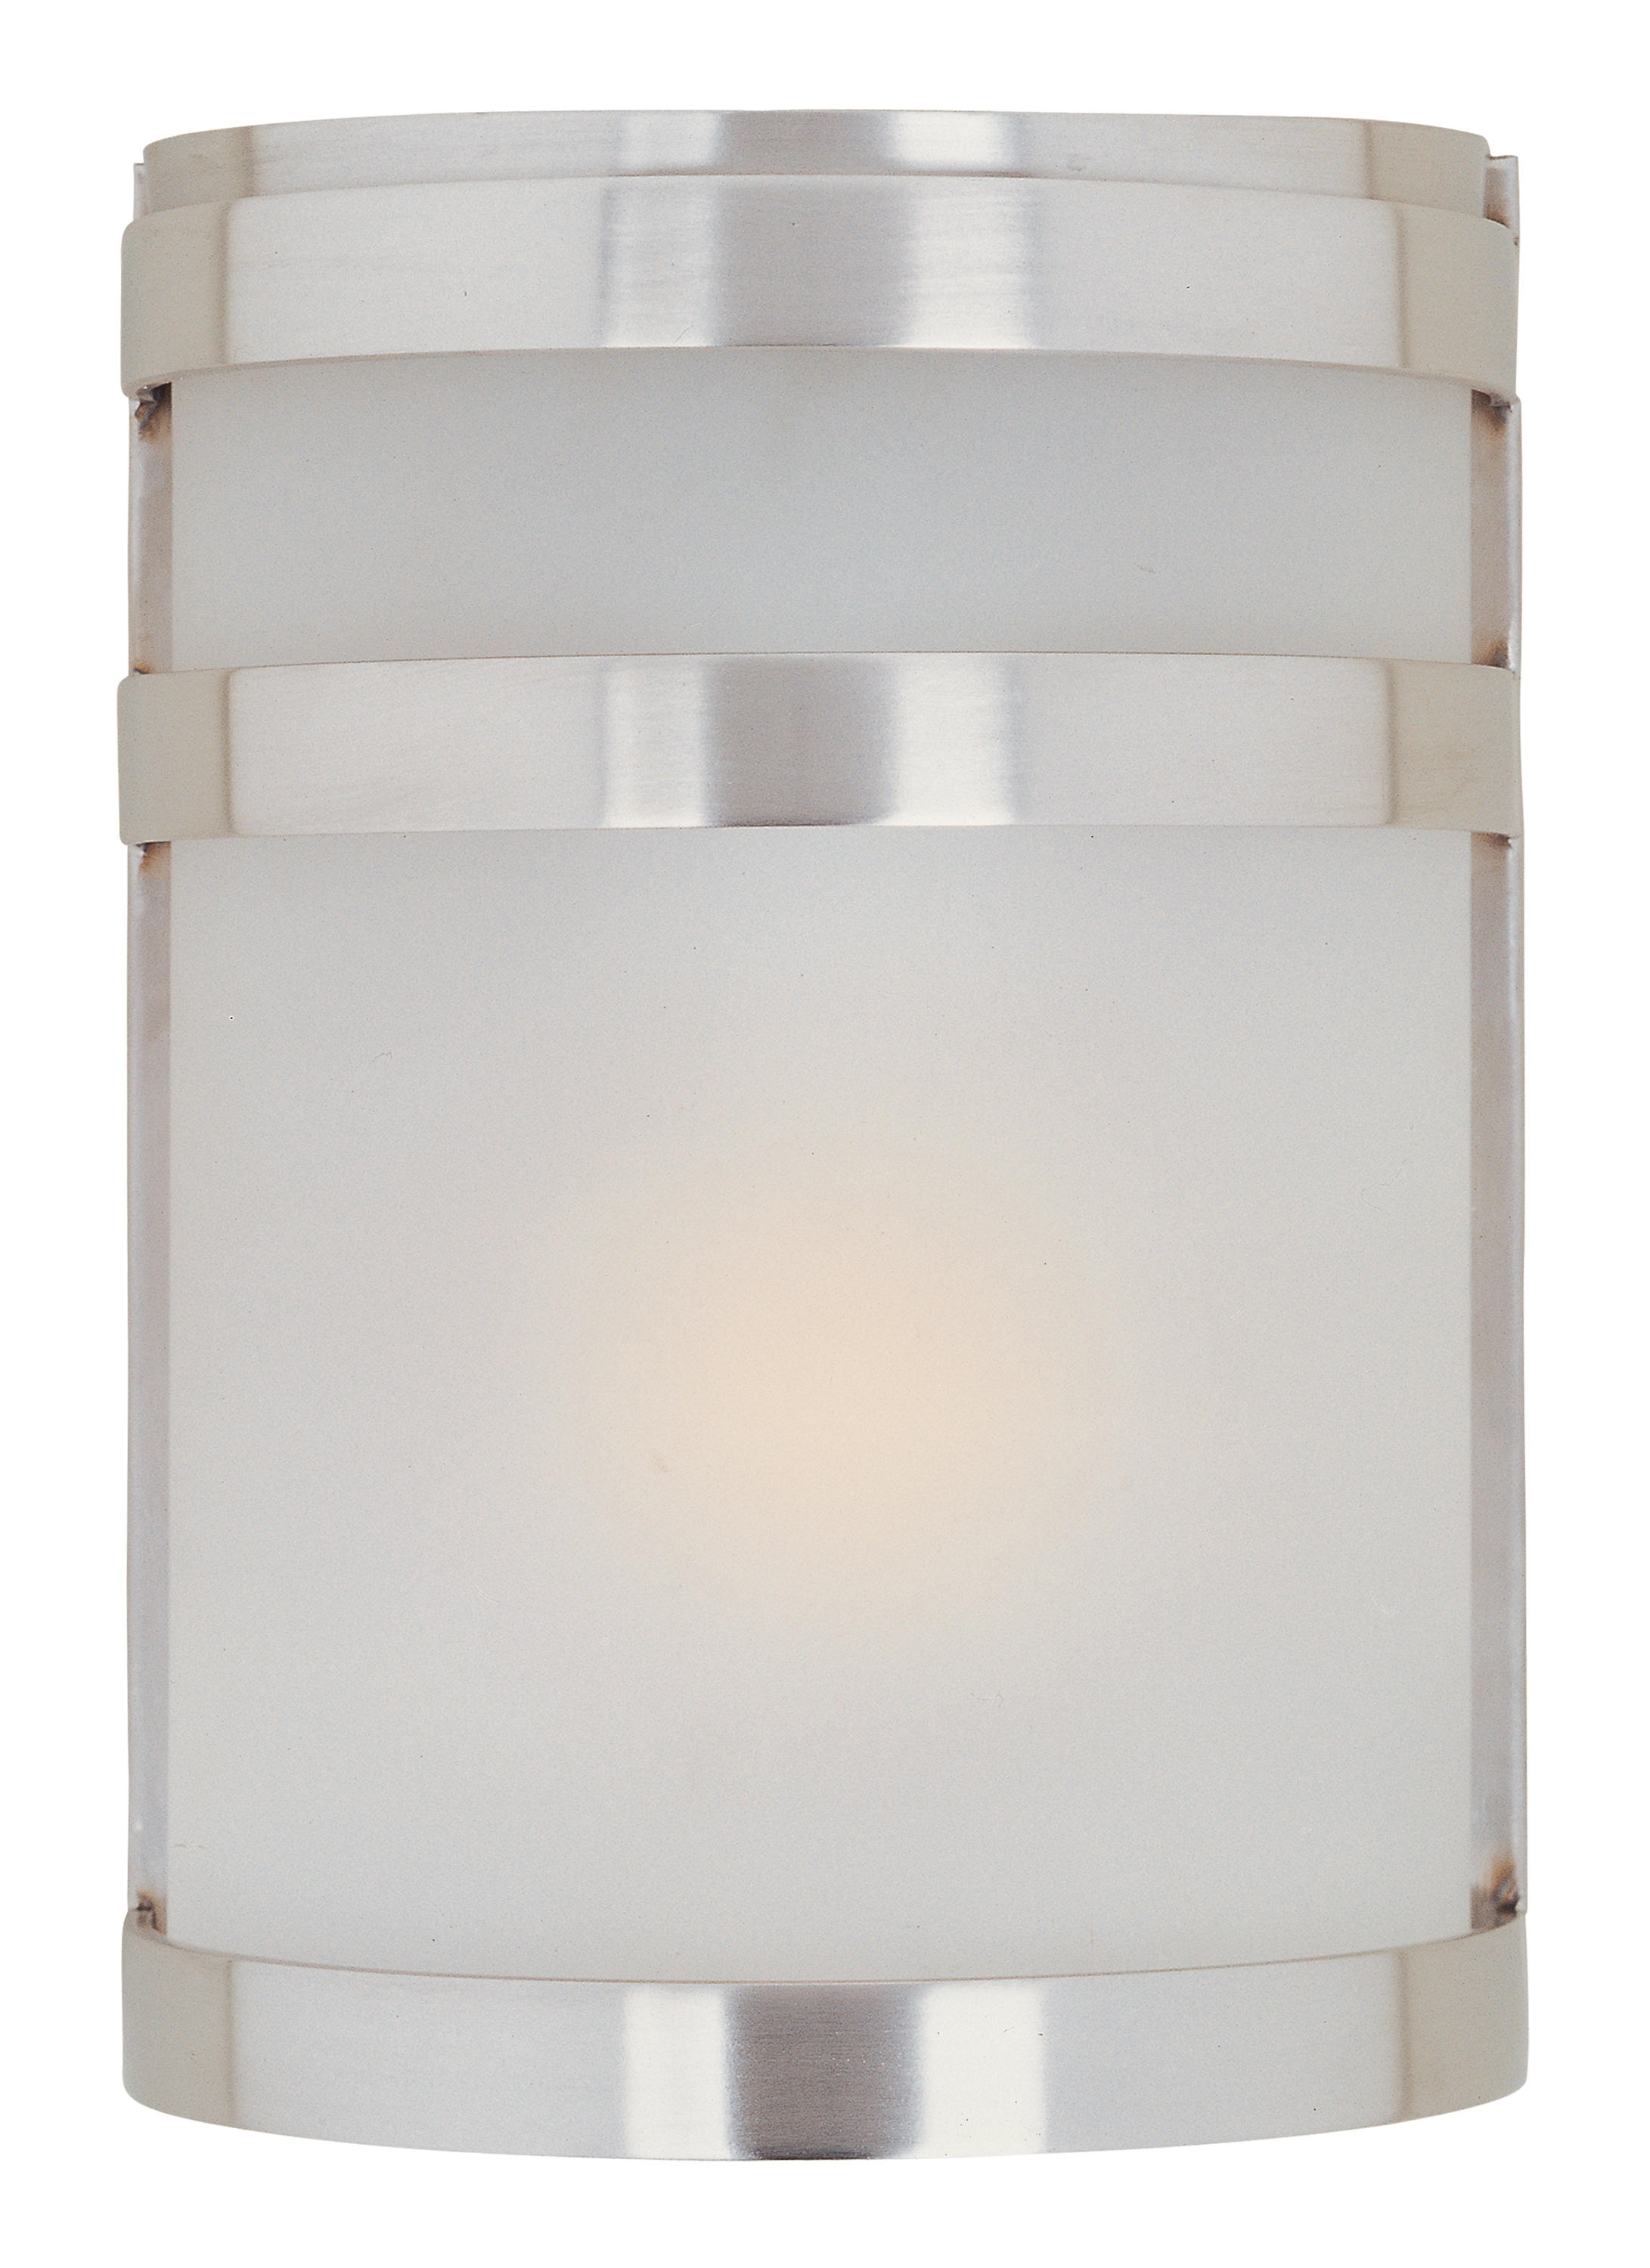 Arc LED Outdoor Wall Sconce | Maxim Lighting